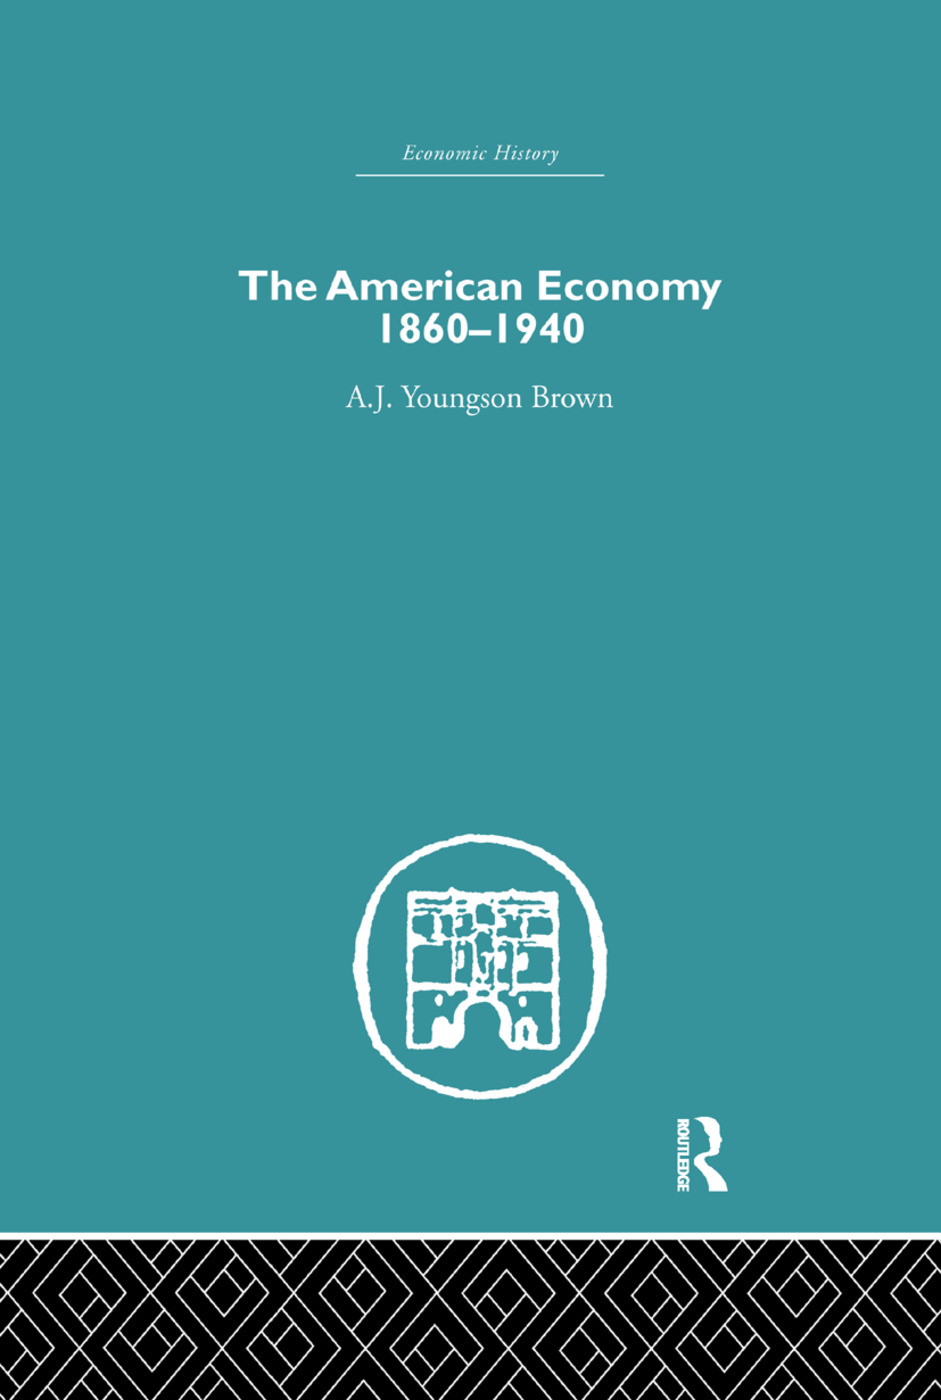 The American Economy 1860-1940 book cover